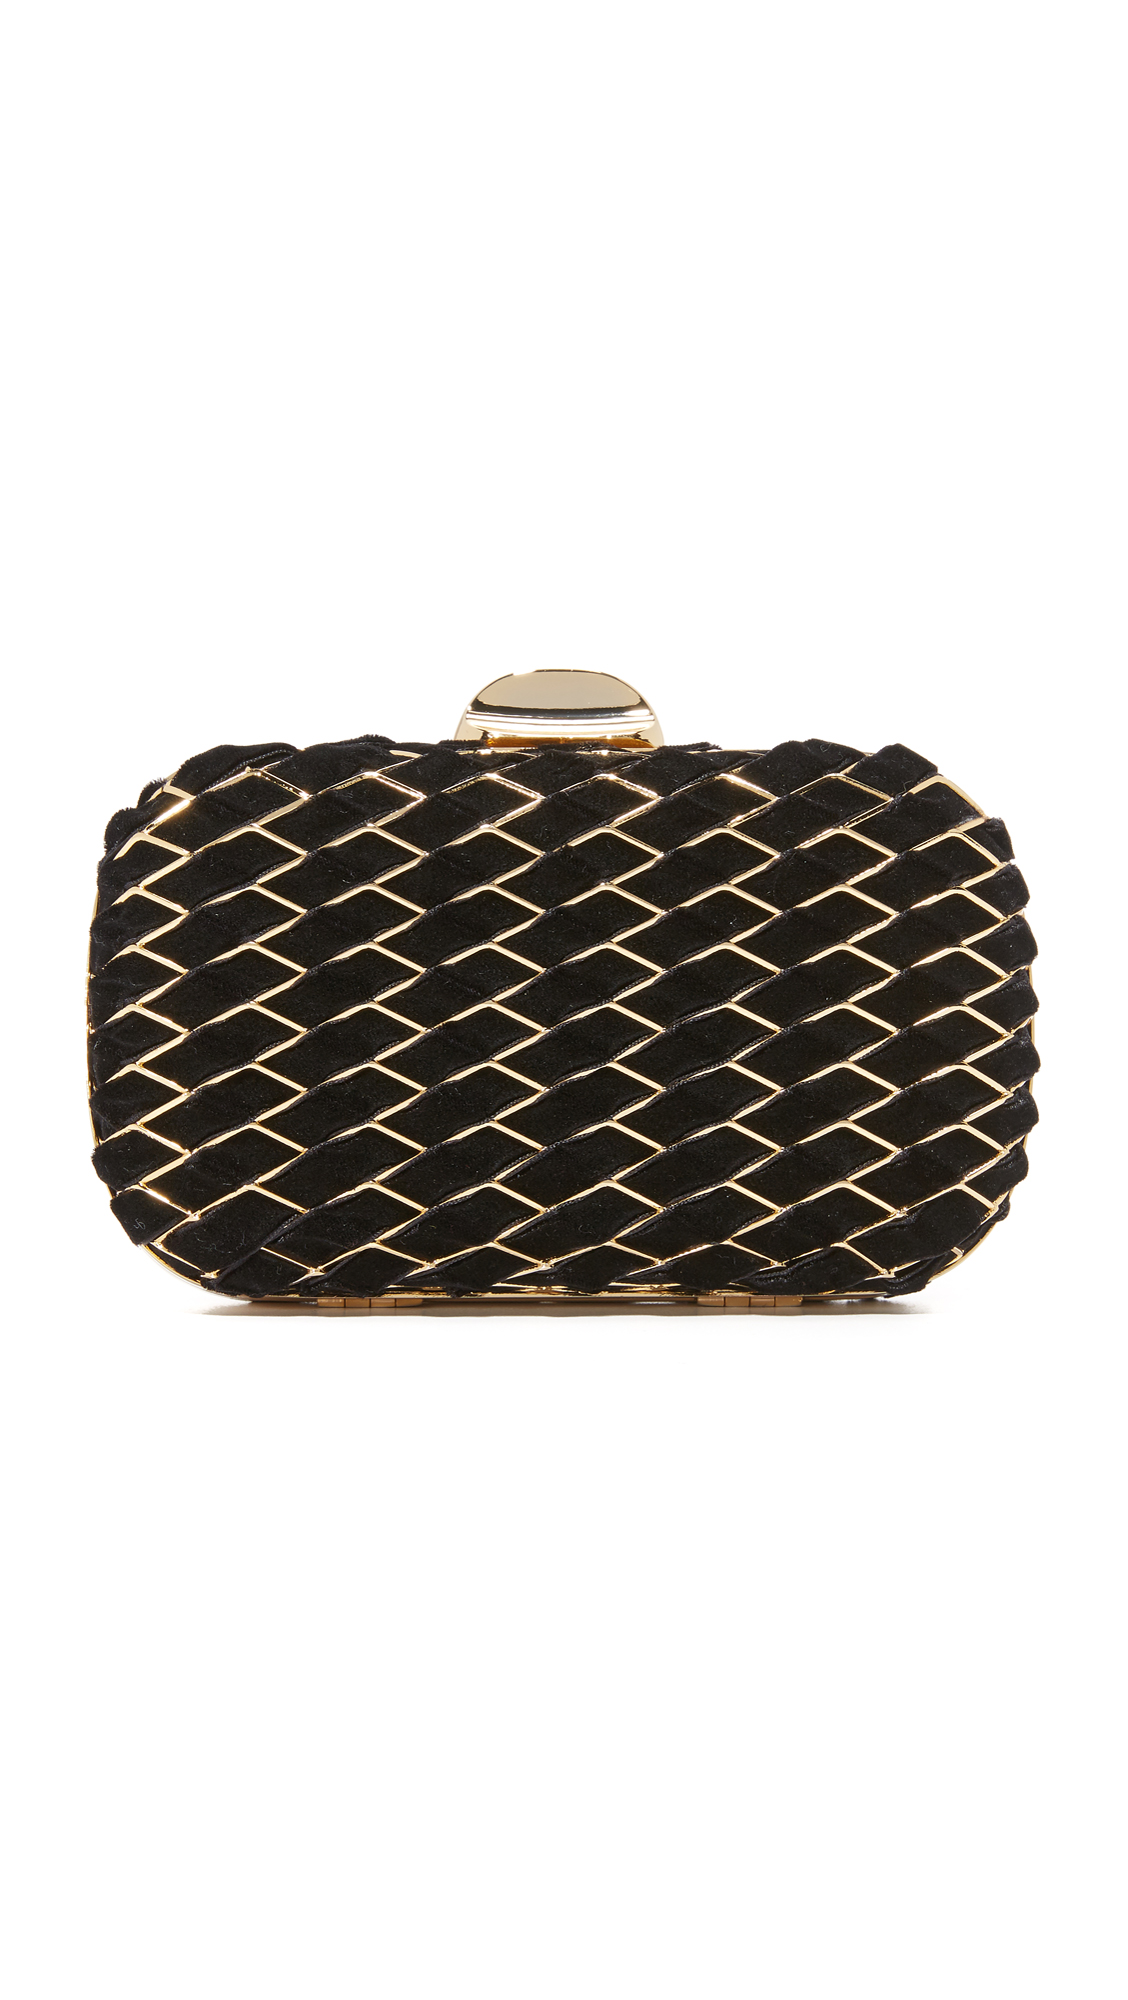 Inge Christopher Keira Clutch - Black/Gold